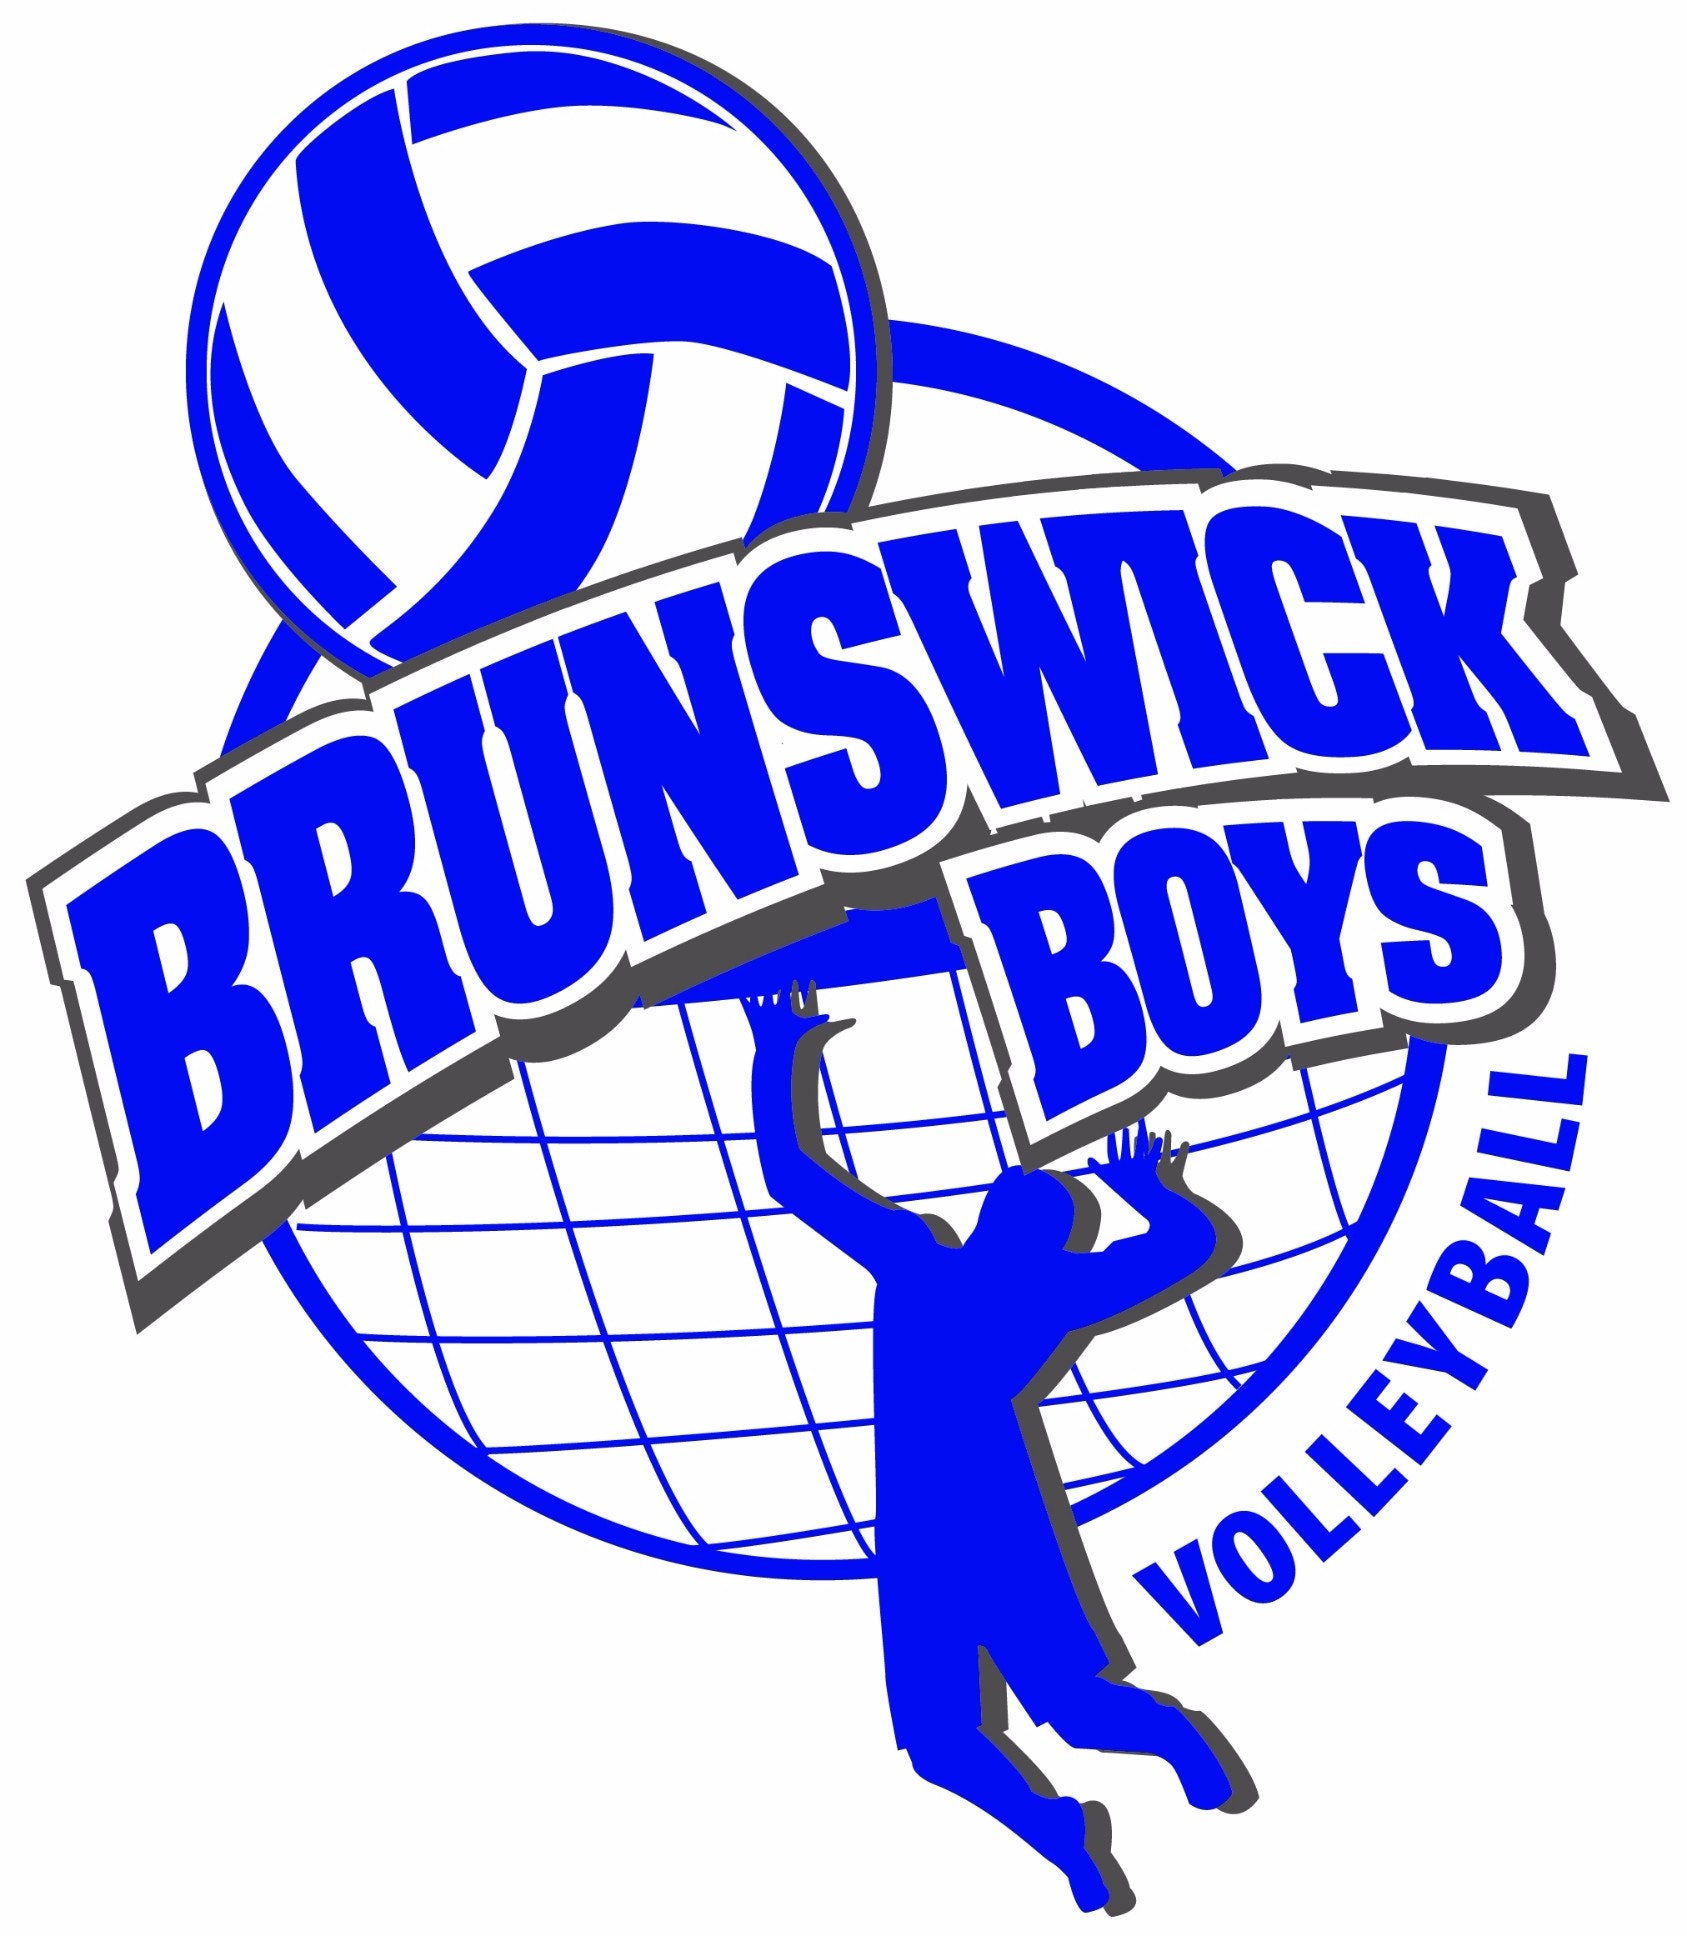 BHS Boys Volleyball Club